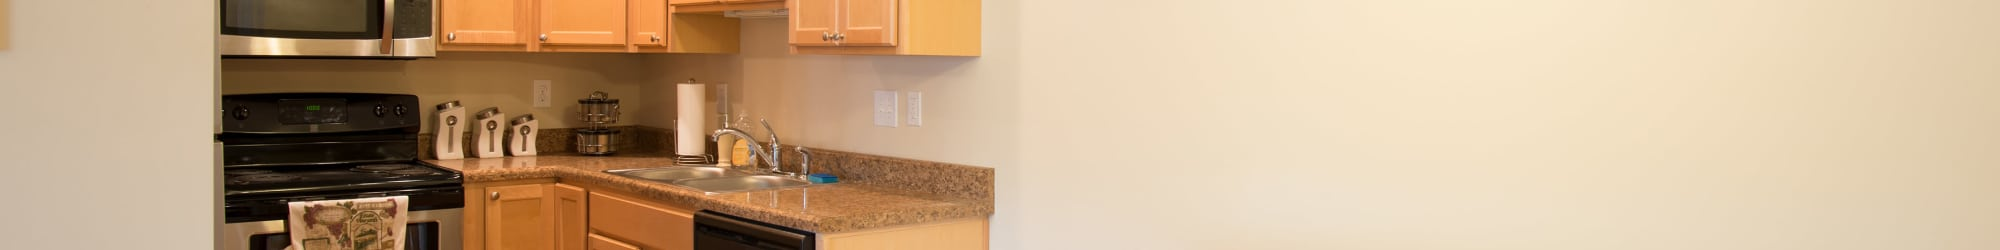 Want to live at Kendall Square Apartments? Apply online!